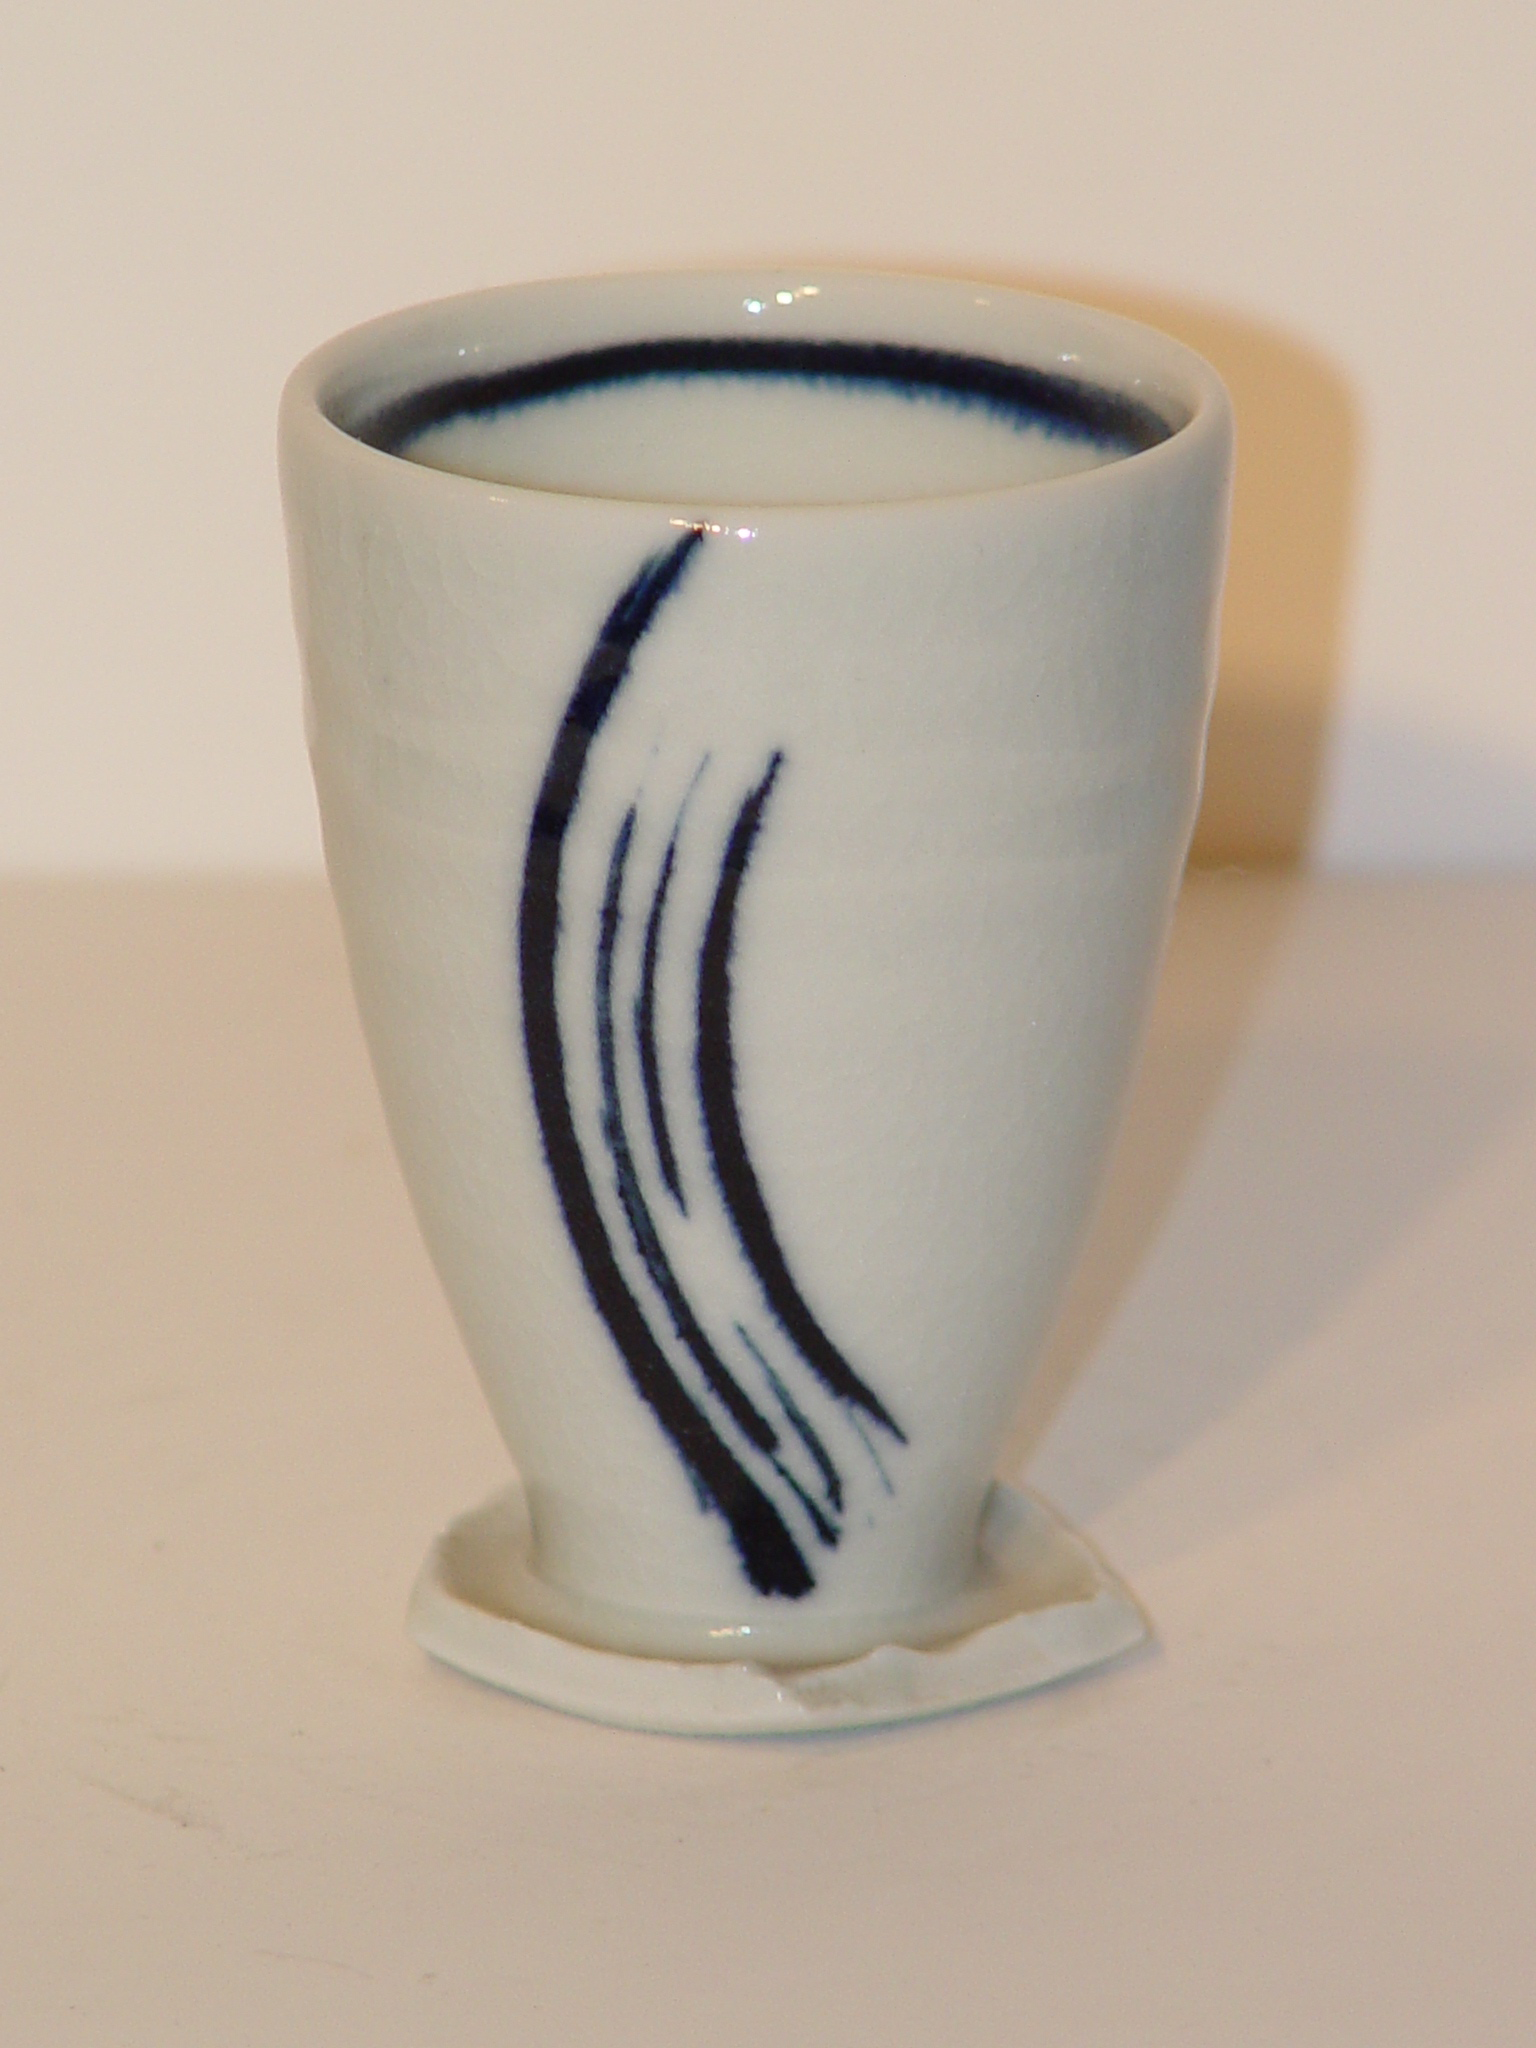 cobalt over glazed on porcelain